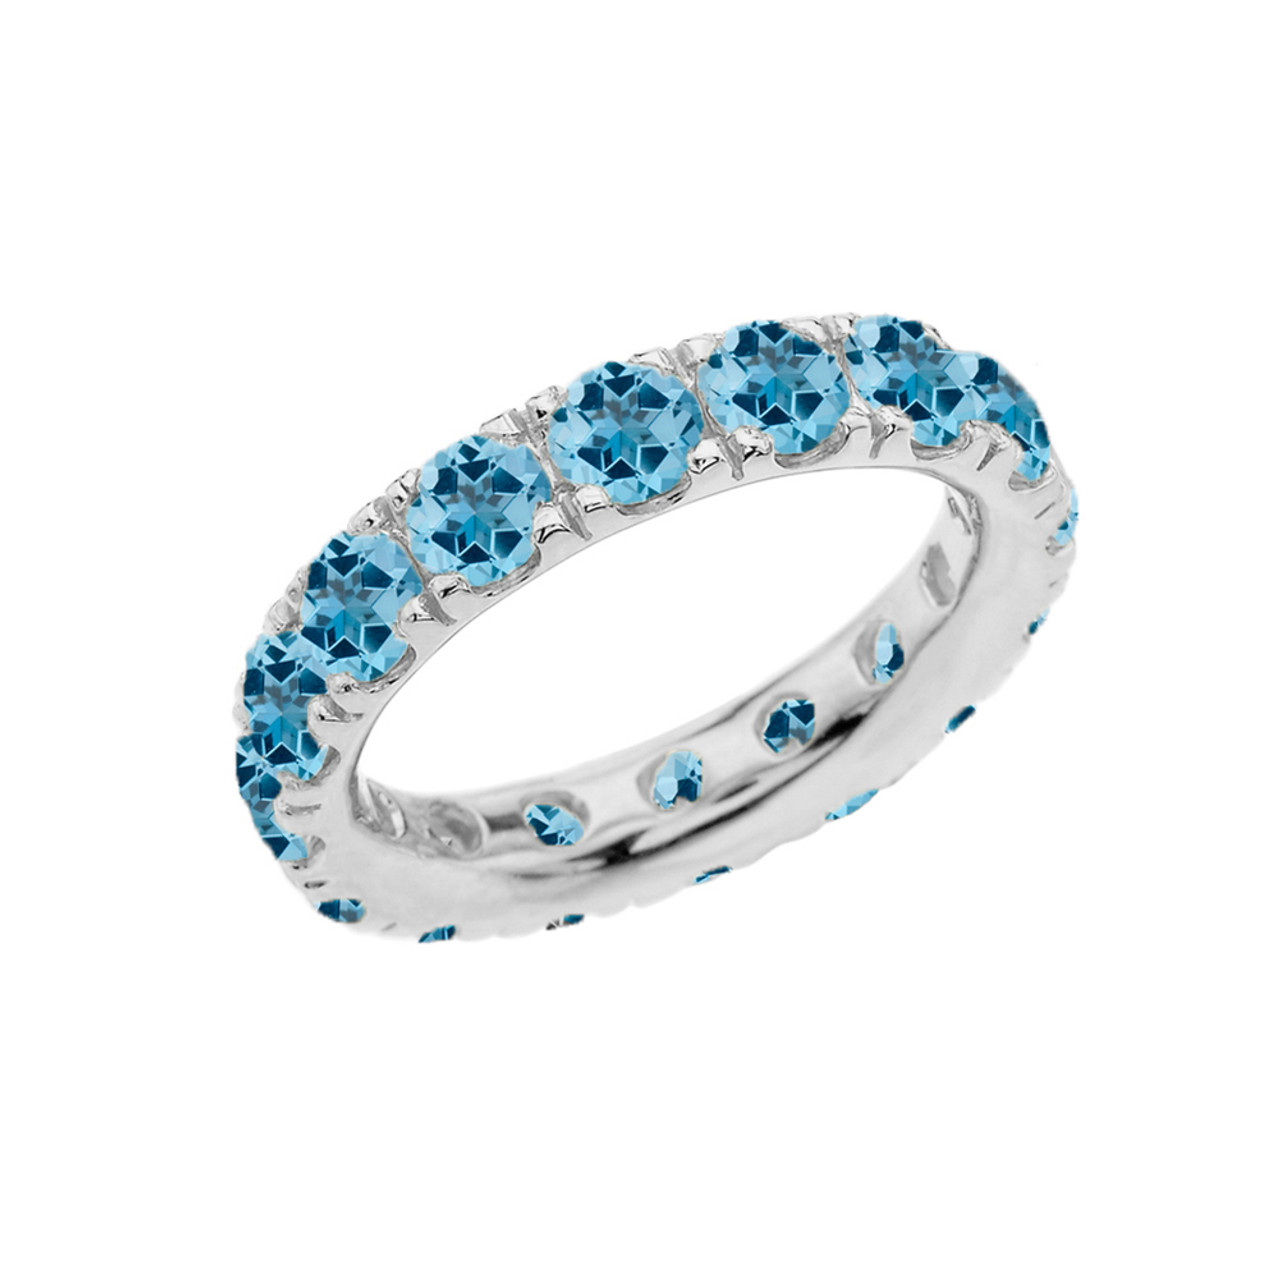 4mm comfort fit sterling silver eternity band with december